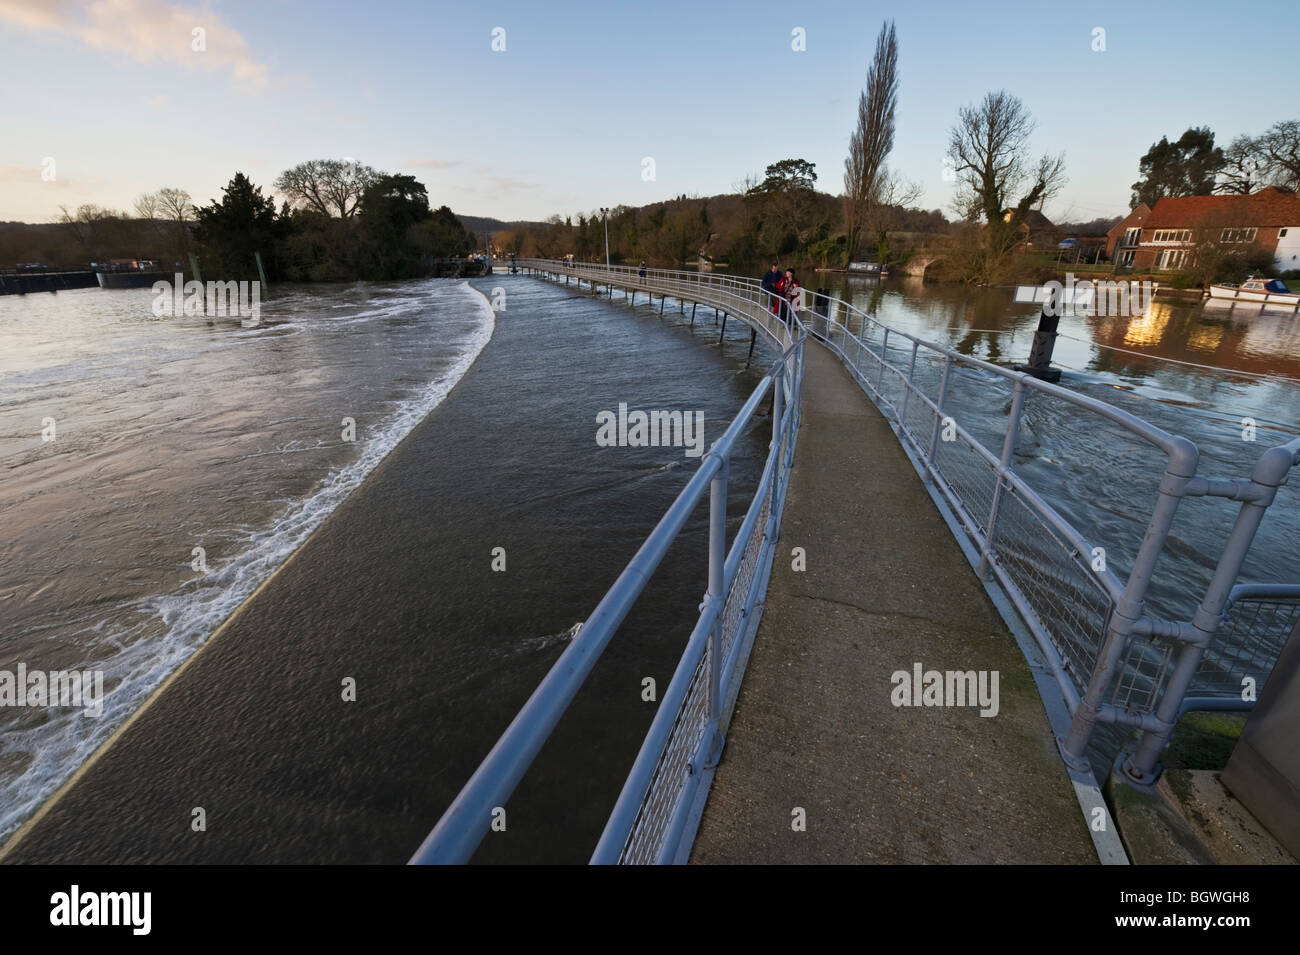 The public walkway on Hambleden Weir on the River Thames at Mill End between Marlow and Henley - Stock Image